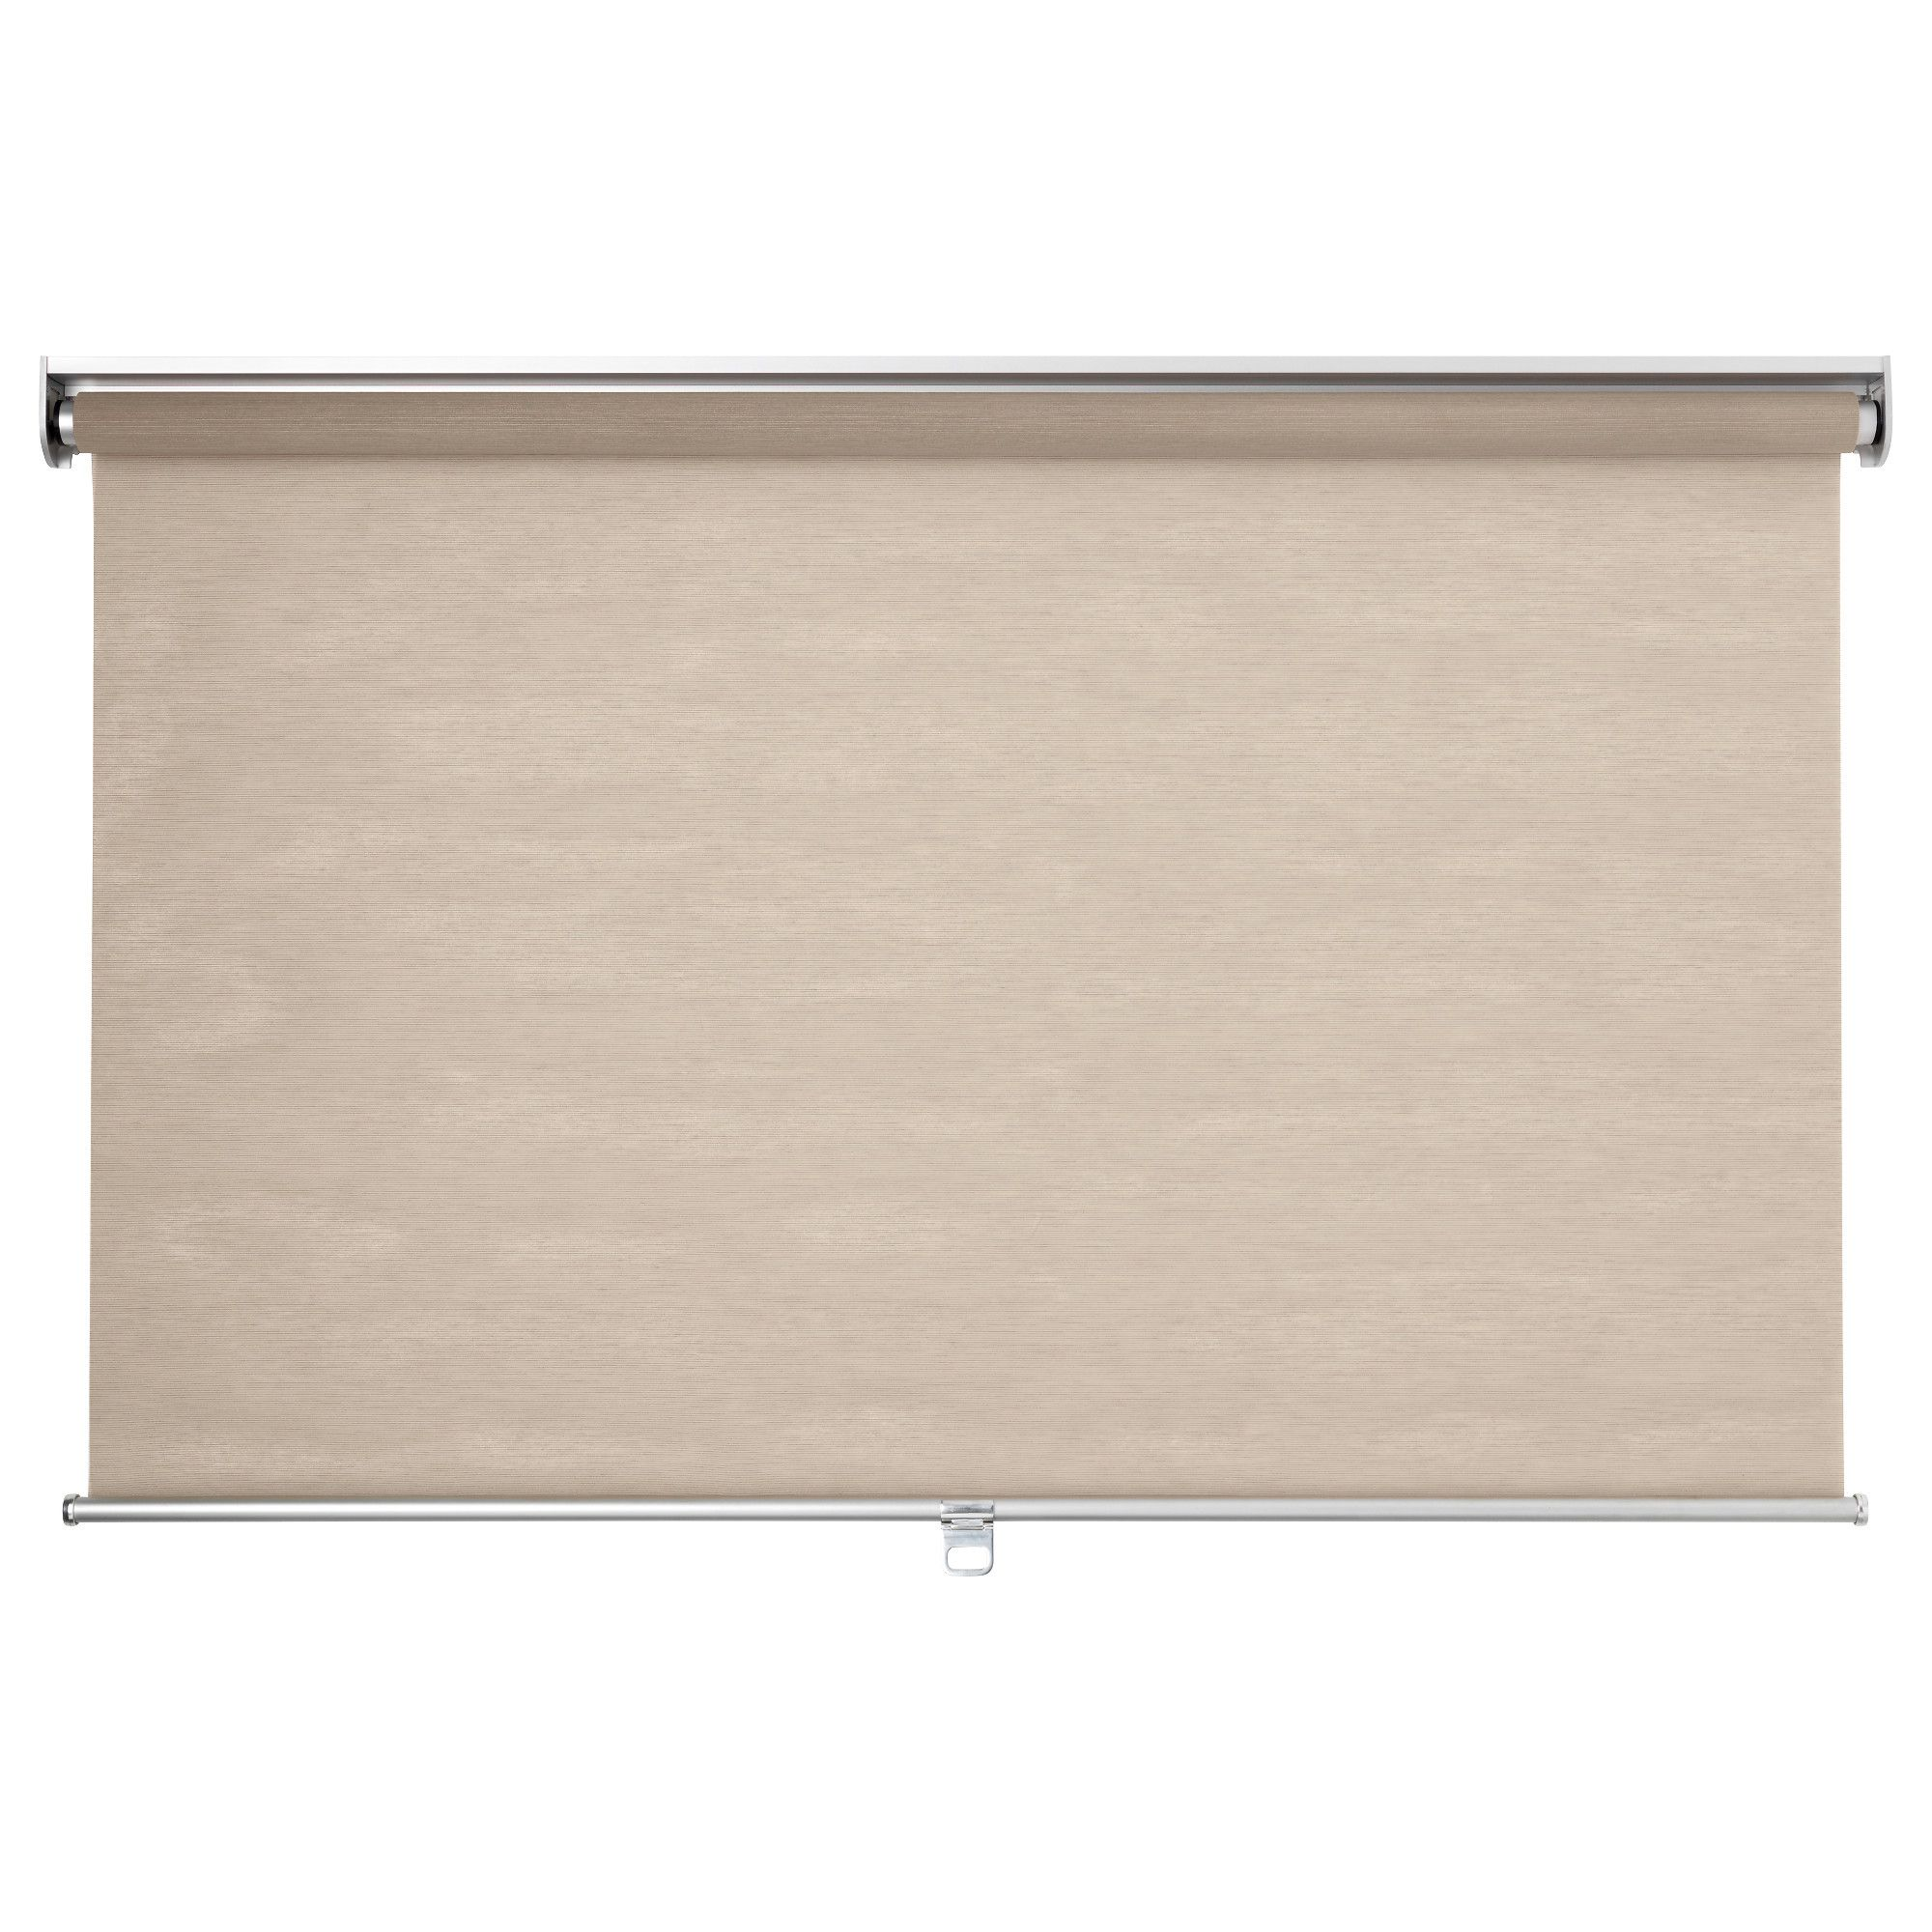 Ikea Skogsklover Roller Blind Beige Products Pinterest Rollo